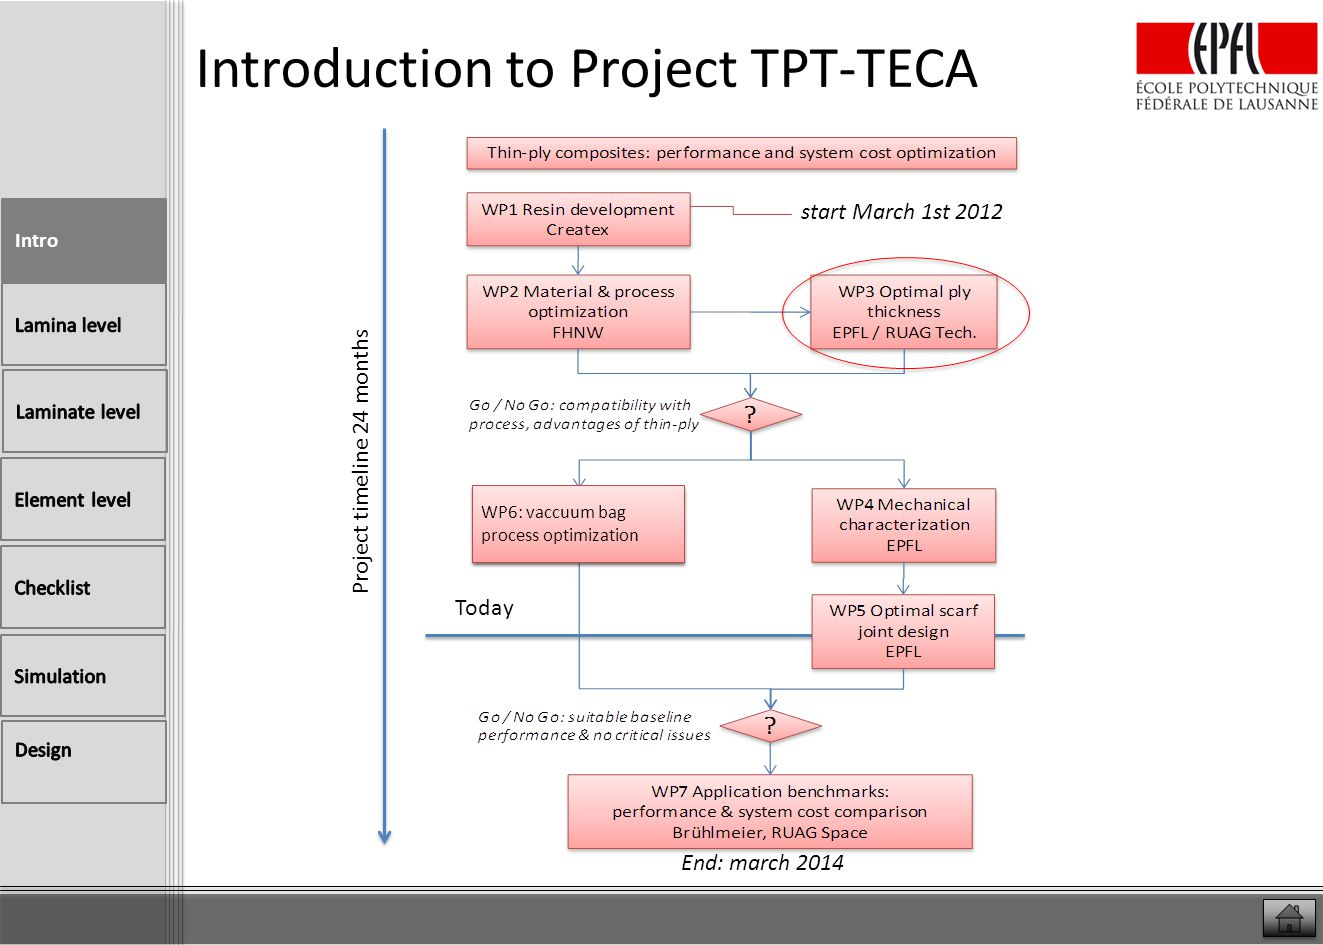 Introduction to Project TPT-TECA TPT-TECA CTI project Today End: march 2014 Project timeline 24 months start March 1st 2012 WP6: vaccuum bag process o